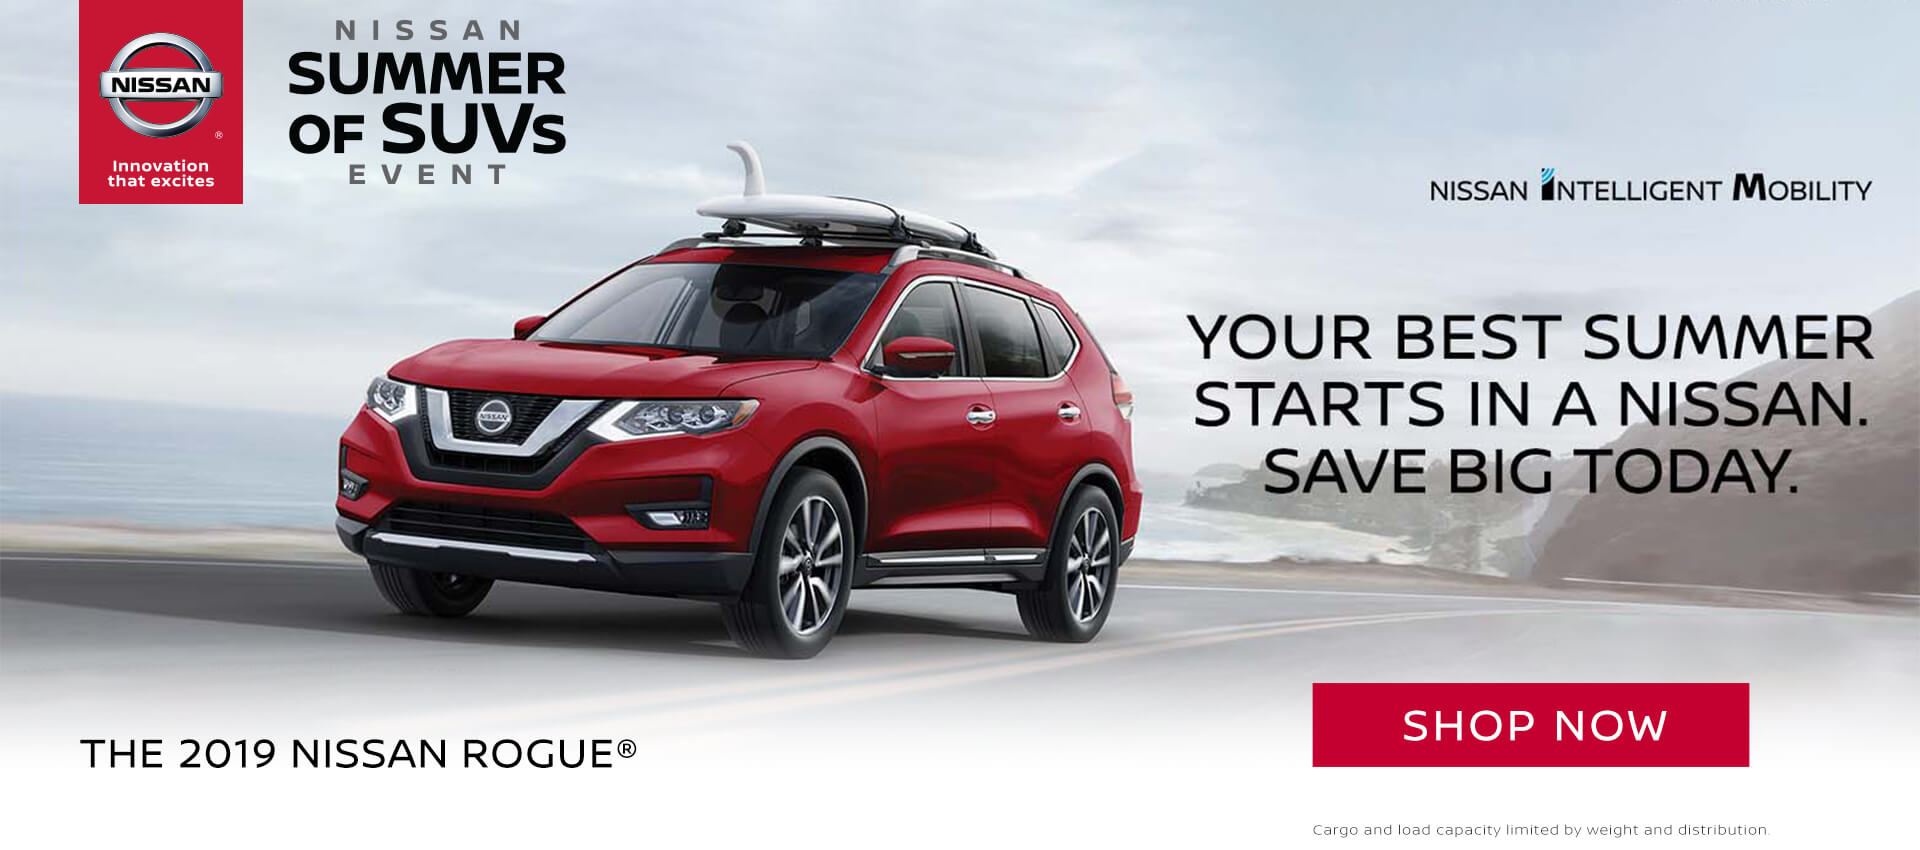 Garden Grove Nissan. Kicks · Sales Event